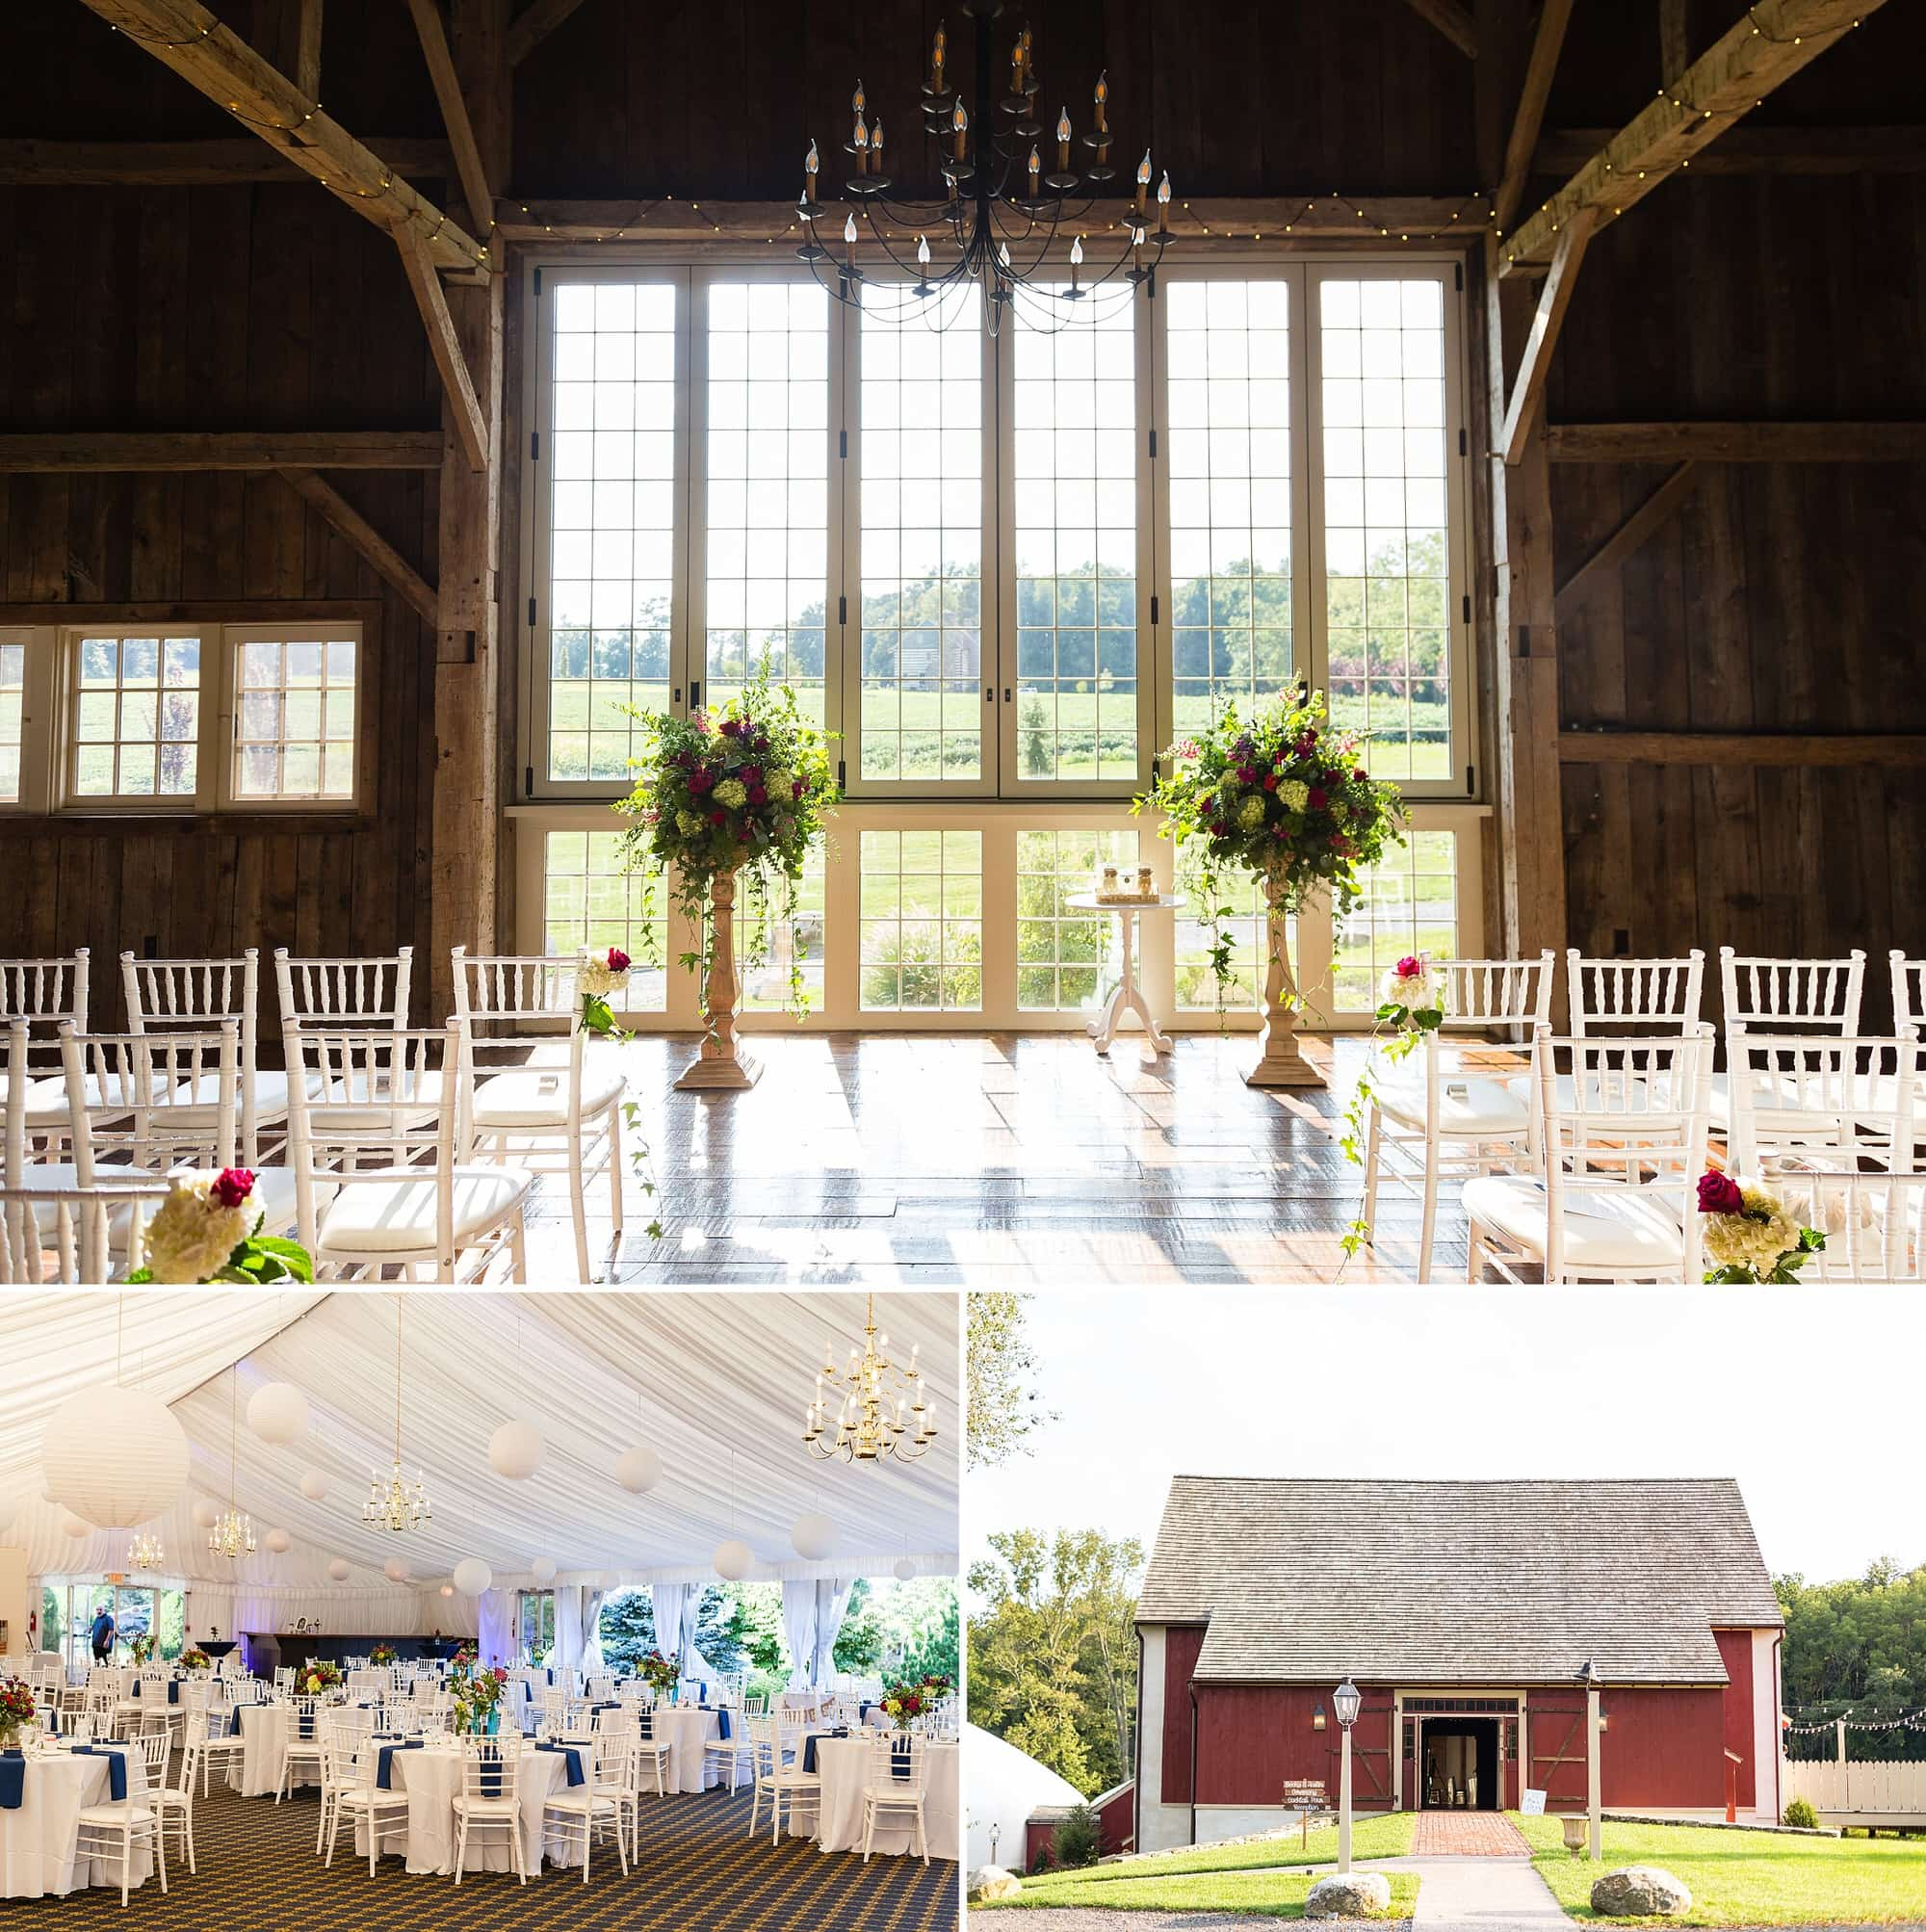 Best new to us philadelphia wedding venue of 2017 brandywine manor house was a new to us venue this year some photographers have the joy of shooting there frequently and we hope to join their ranks in the junglespirit Images